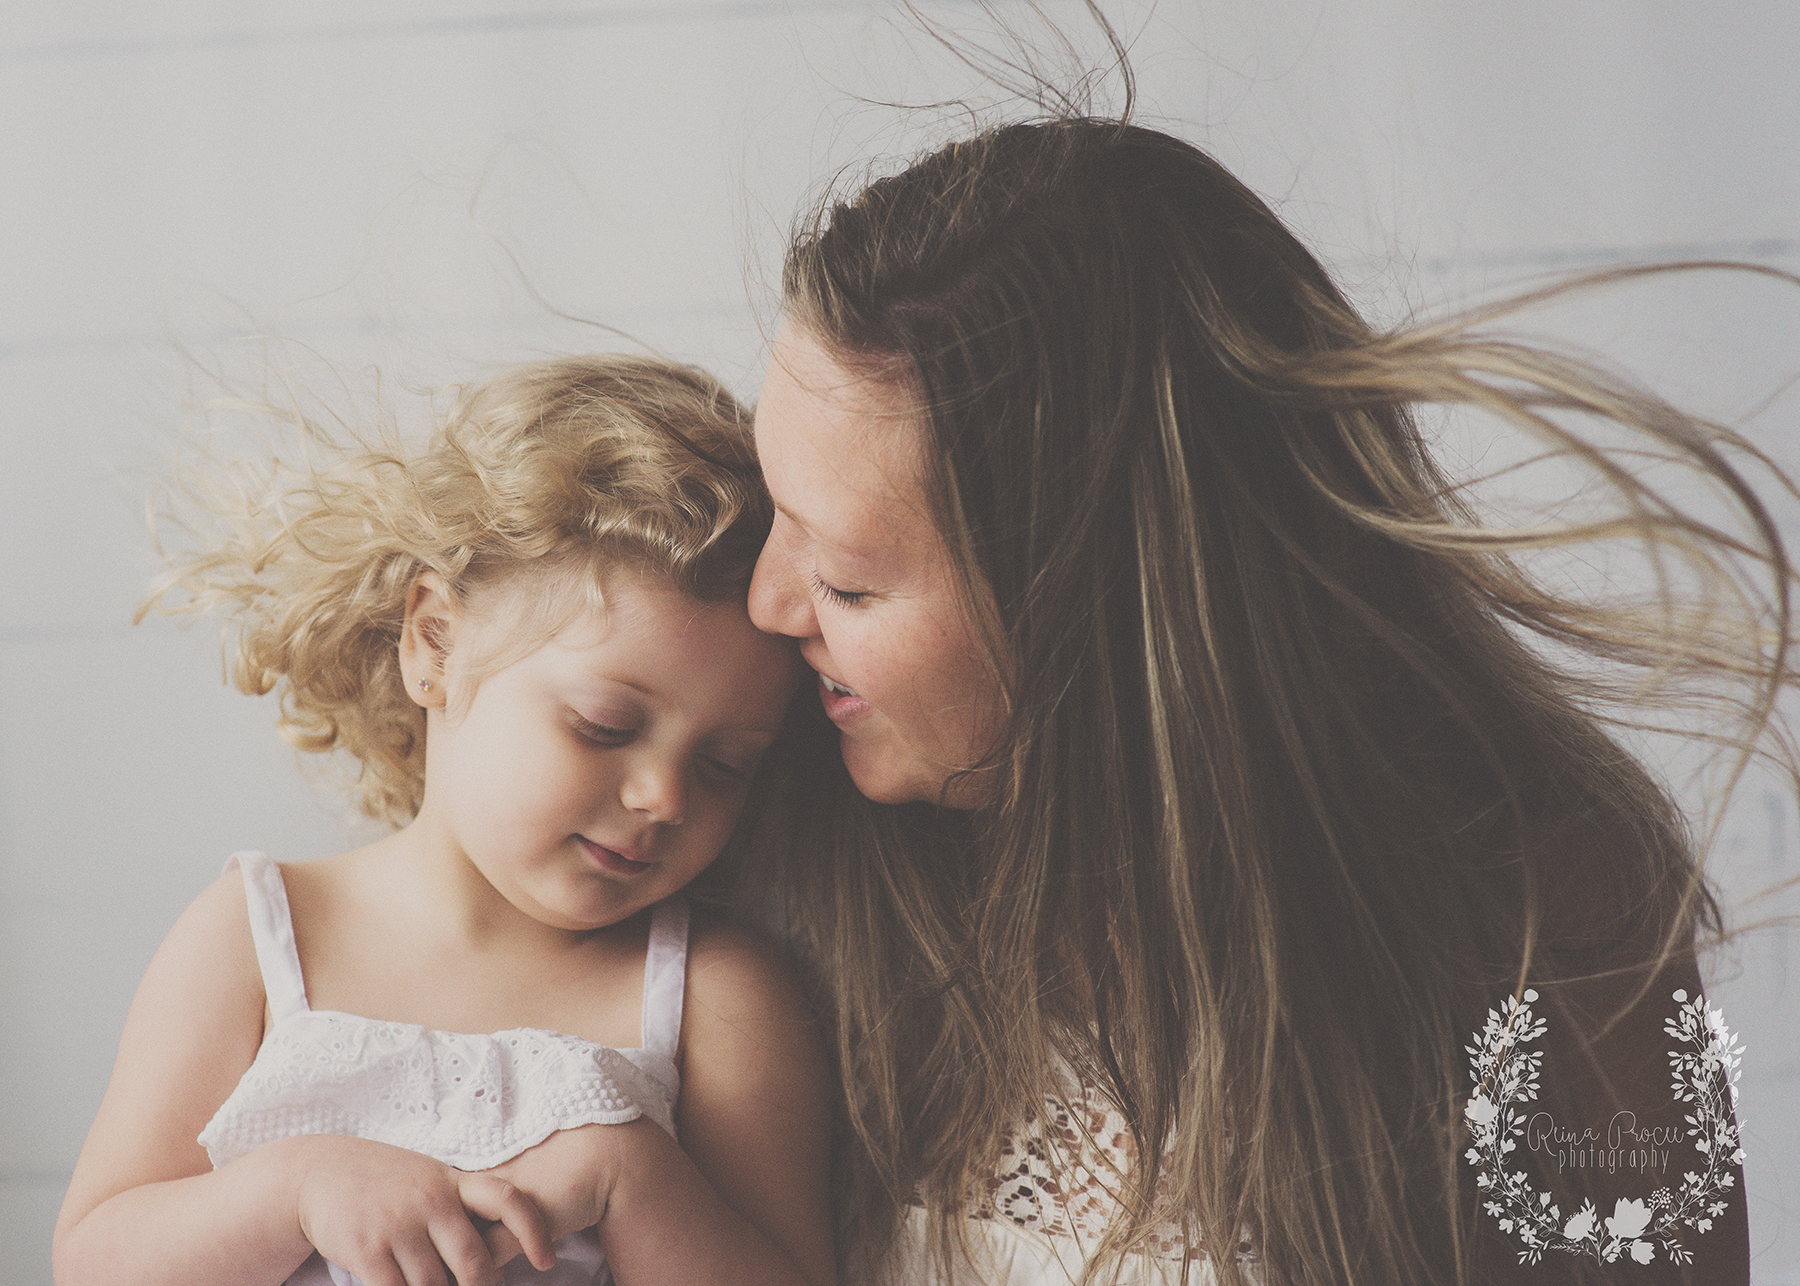 mother-child-love-family-portraits-montreal-photographer13.png